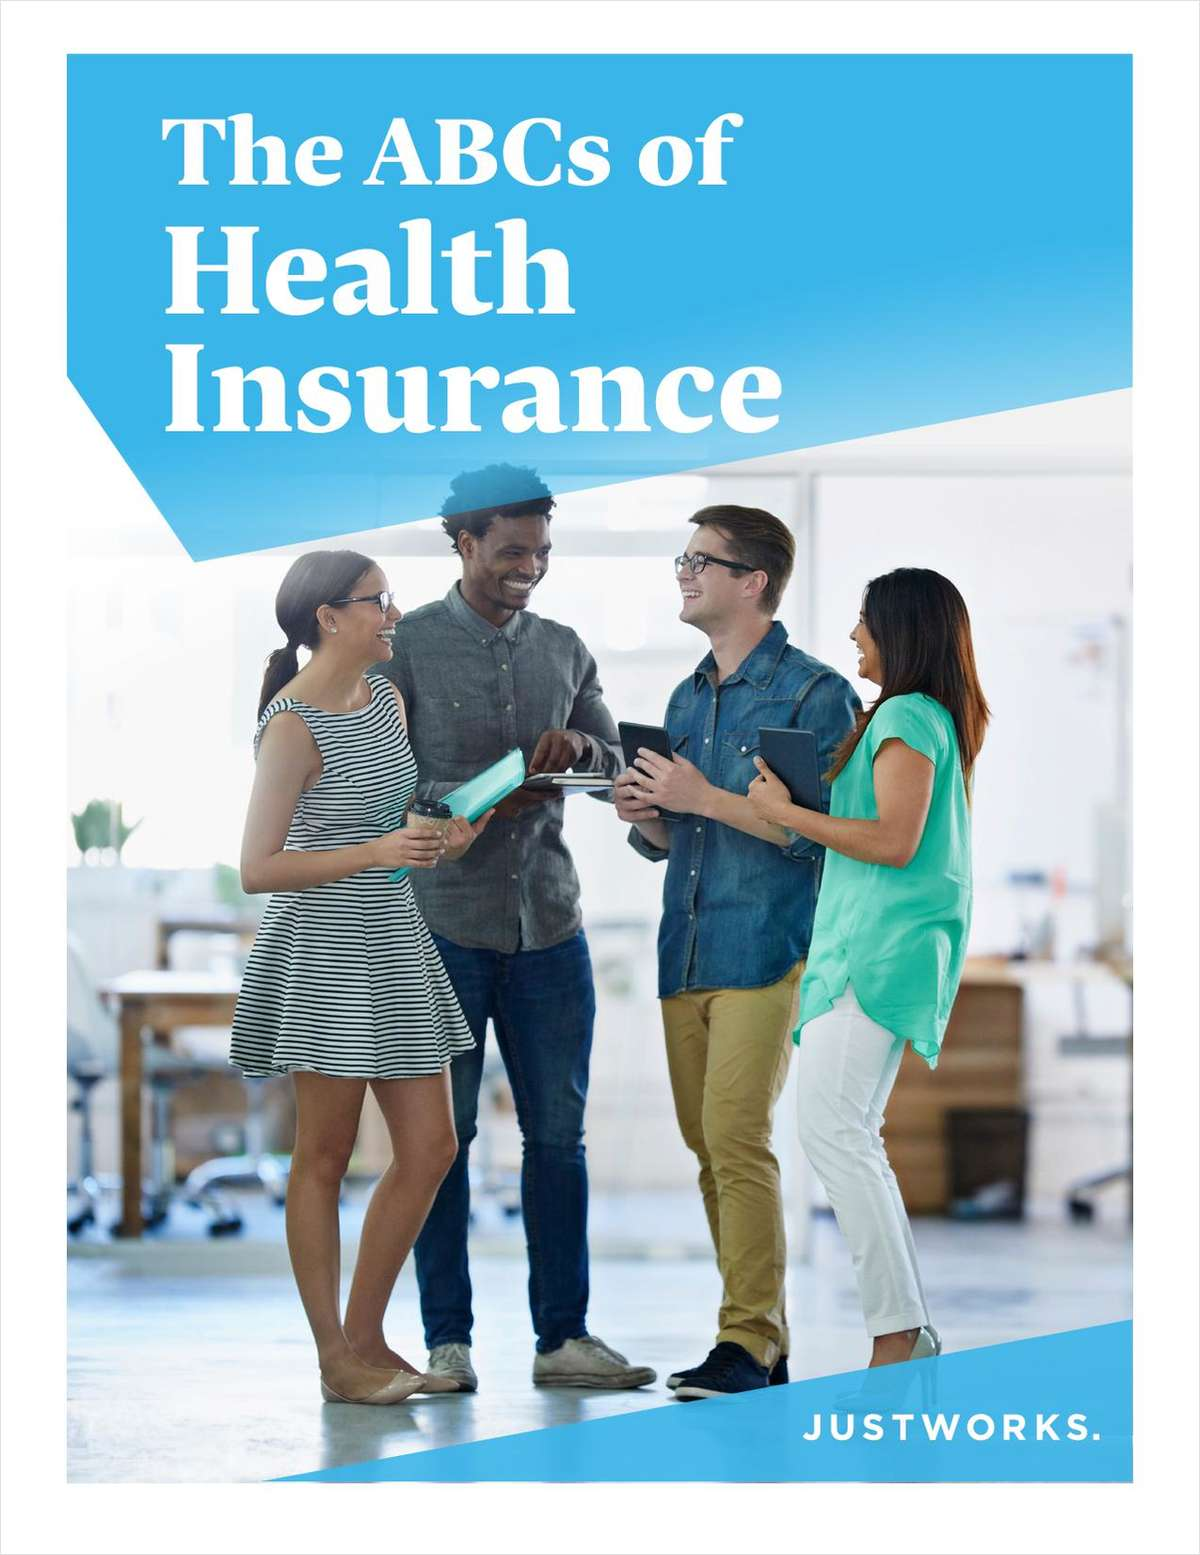 The ABCs of Health Insurance